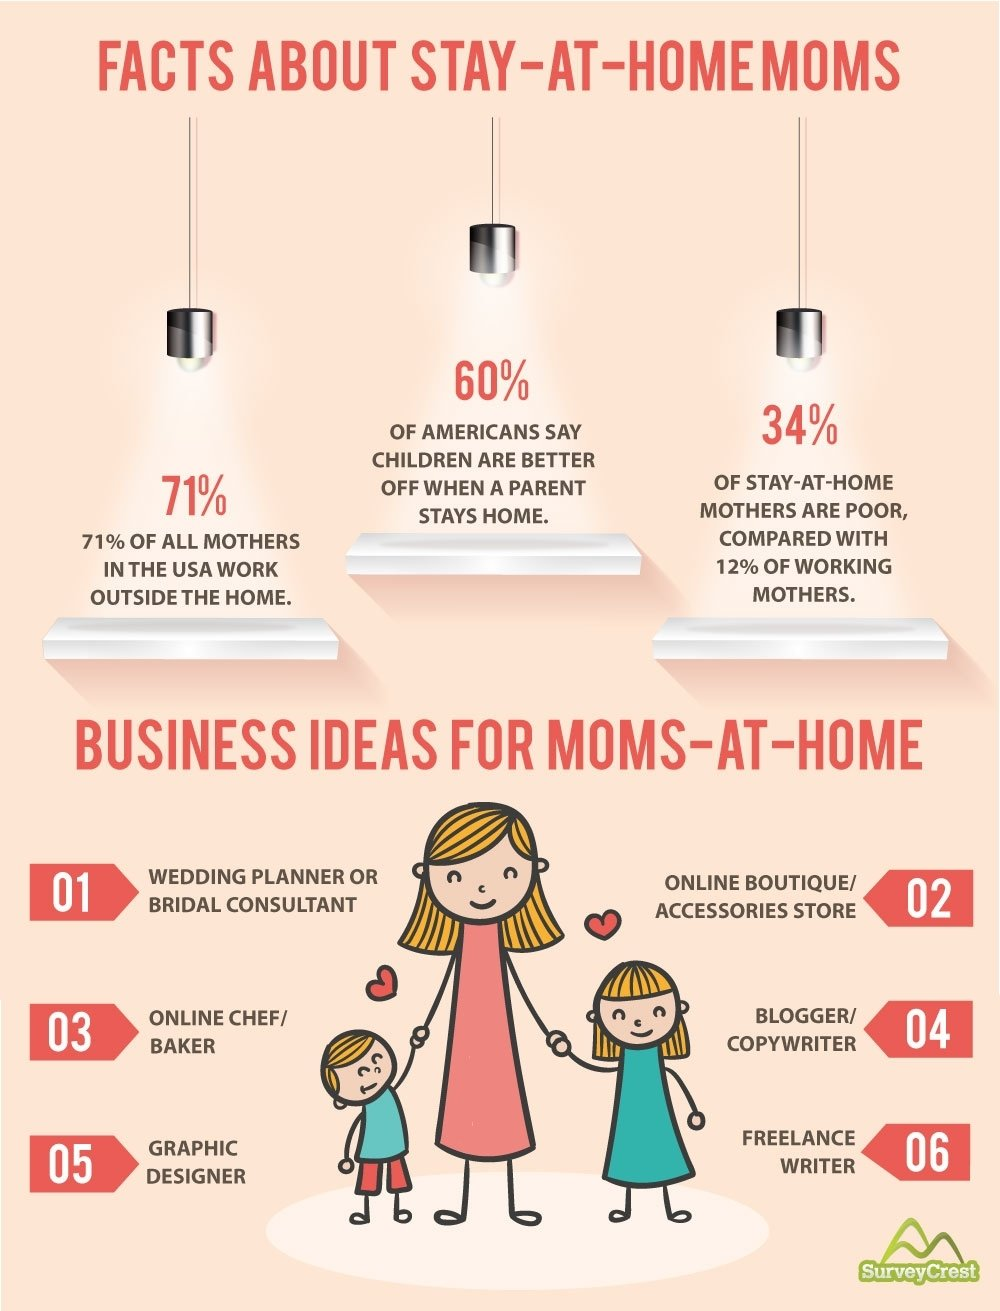 10 Stylish At Home Business Ideas For Moms